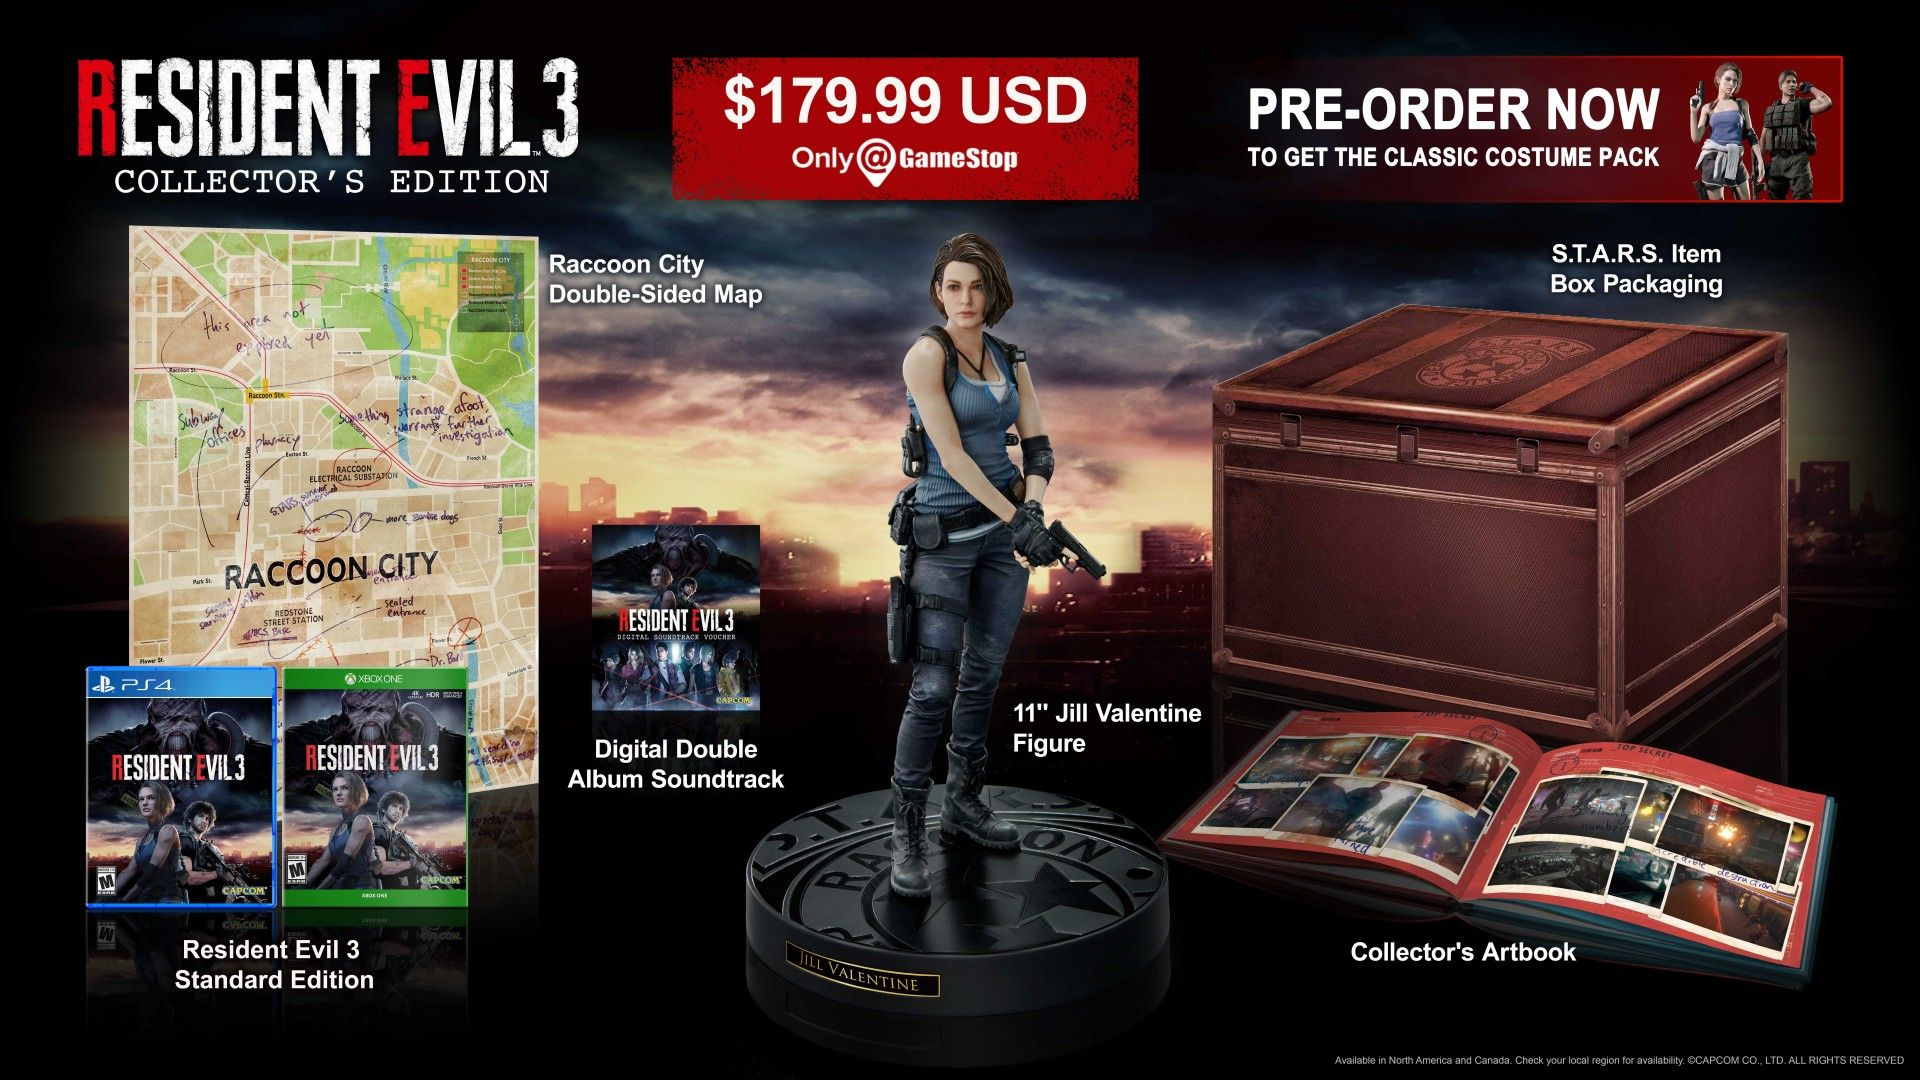 Resident Evil 3 Collector's Edition